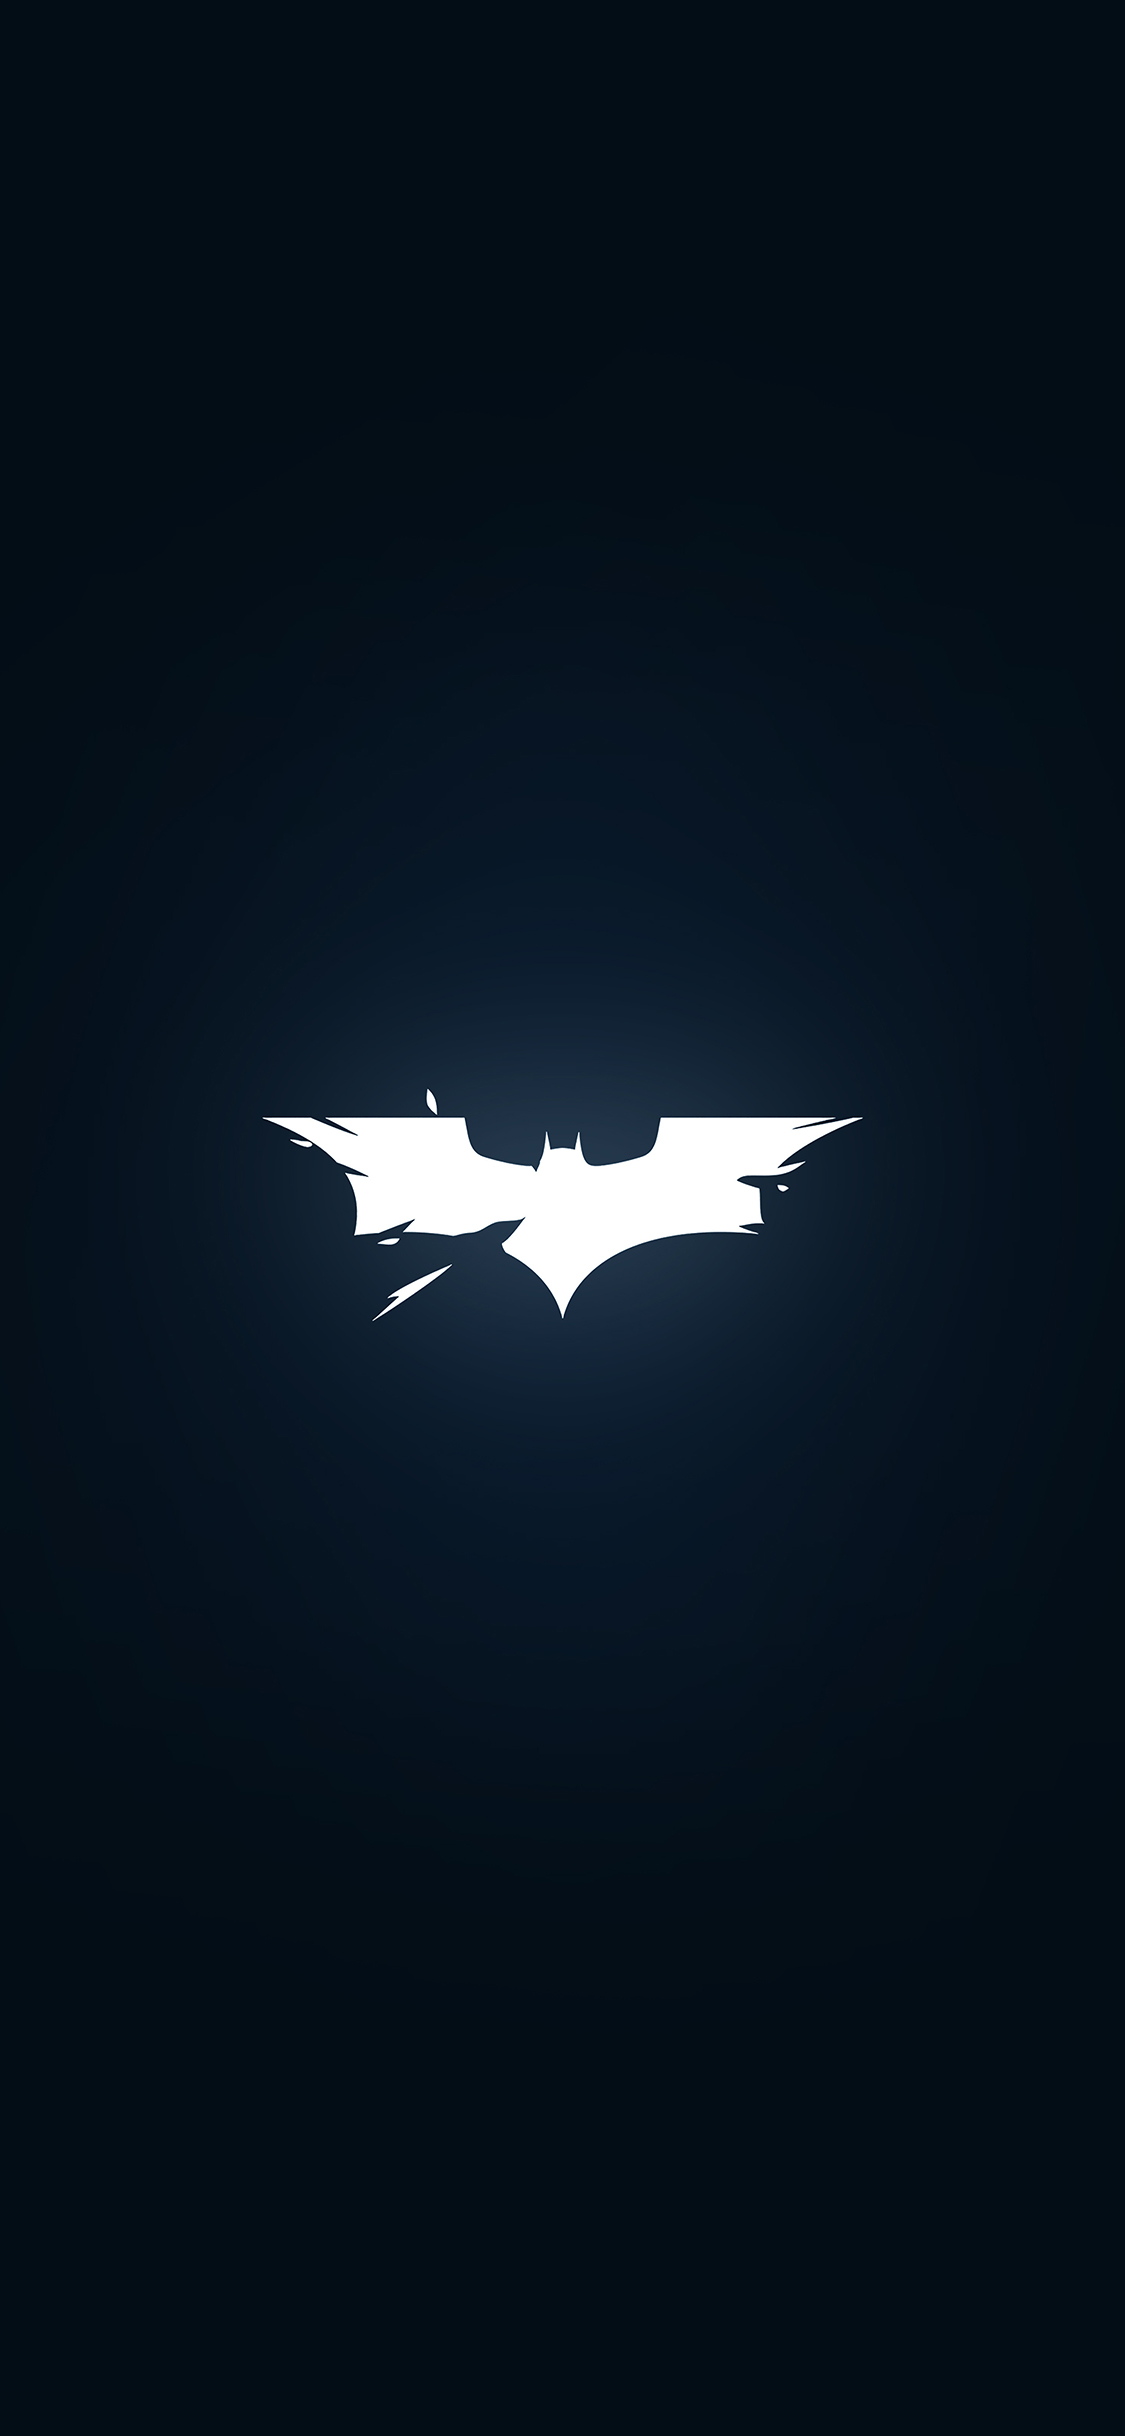 iPhoneXpapers.com-Apple-iPhone-wallpaper-ab55-wallpaper-batman-logo-dark-shattered